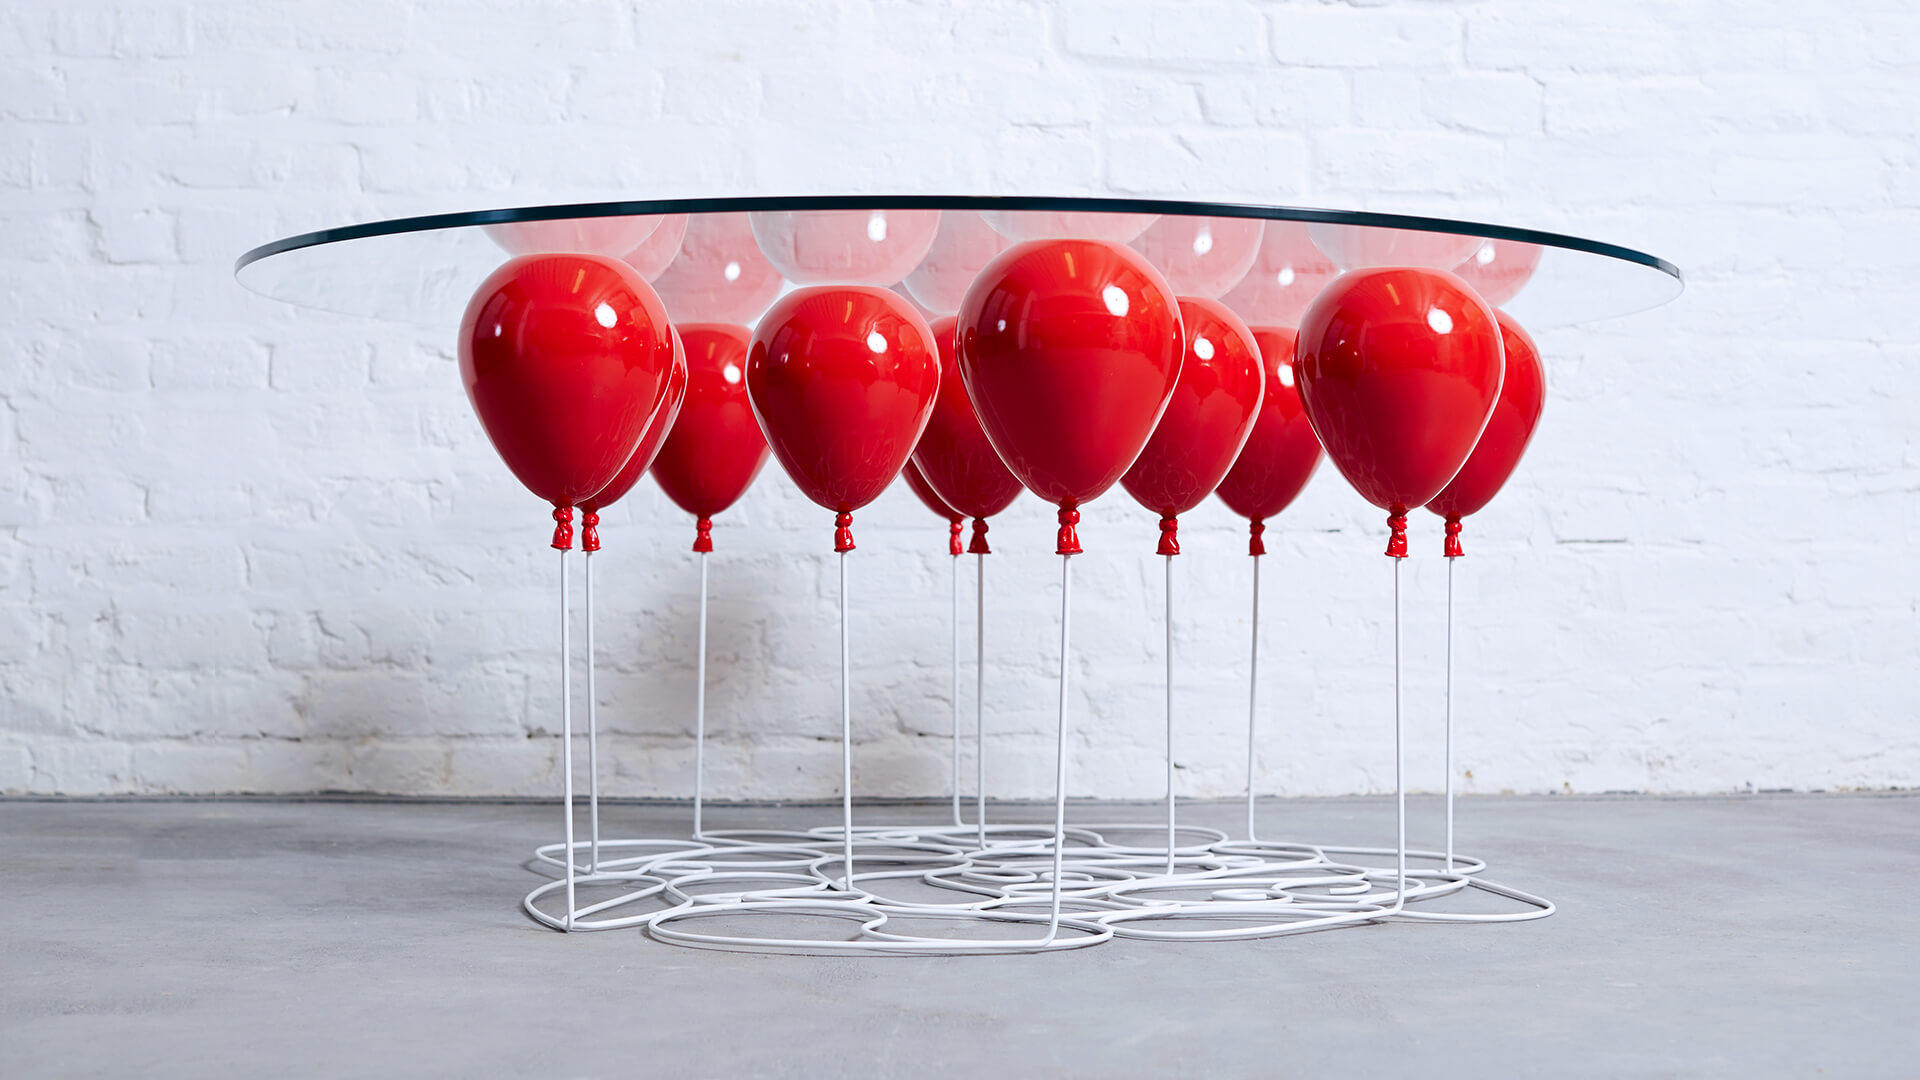 Balloon Coffee Round_Carousel Images_04